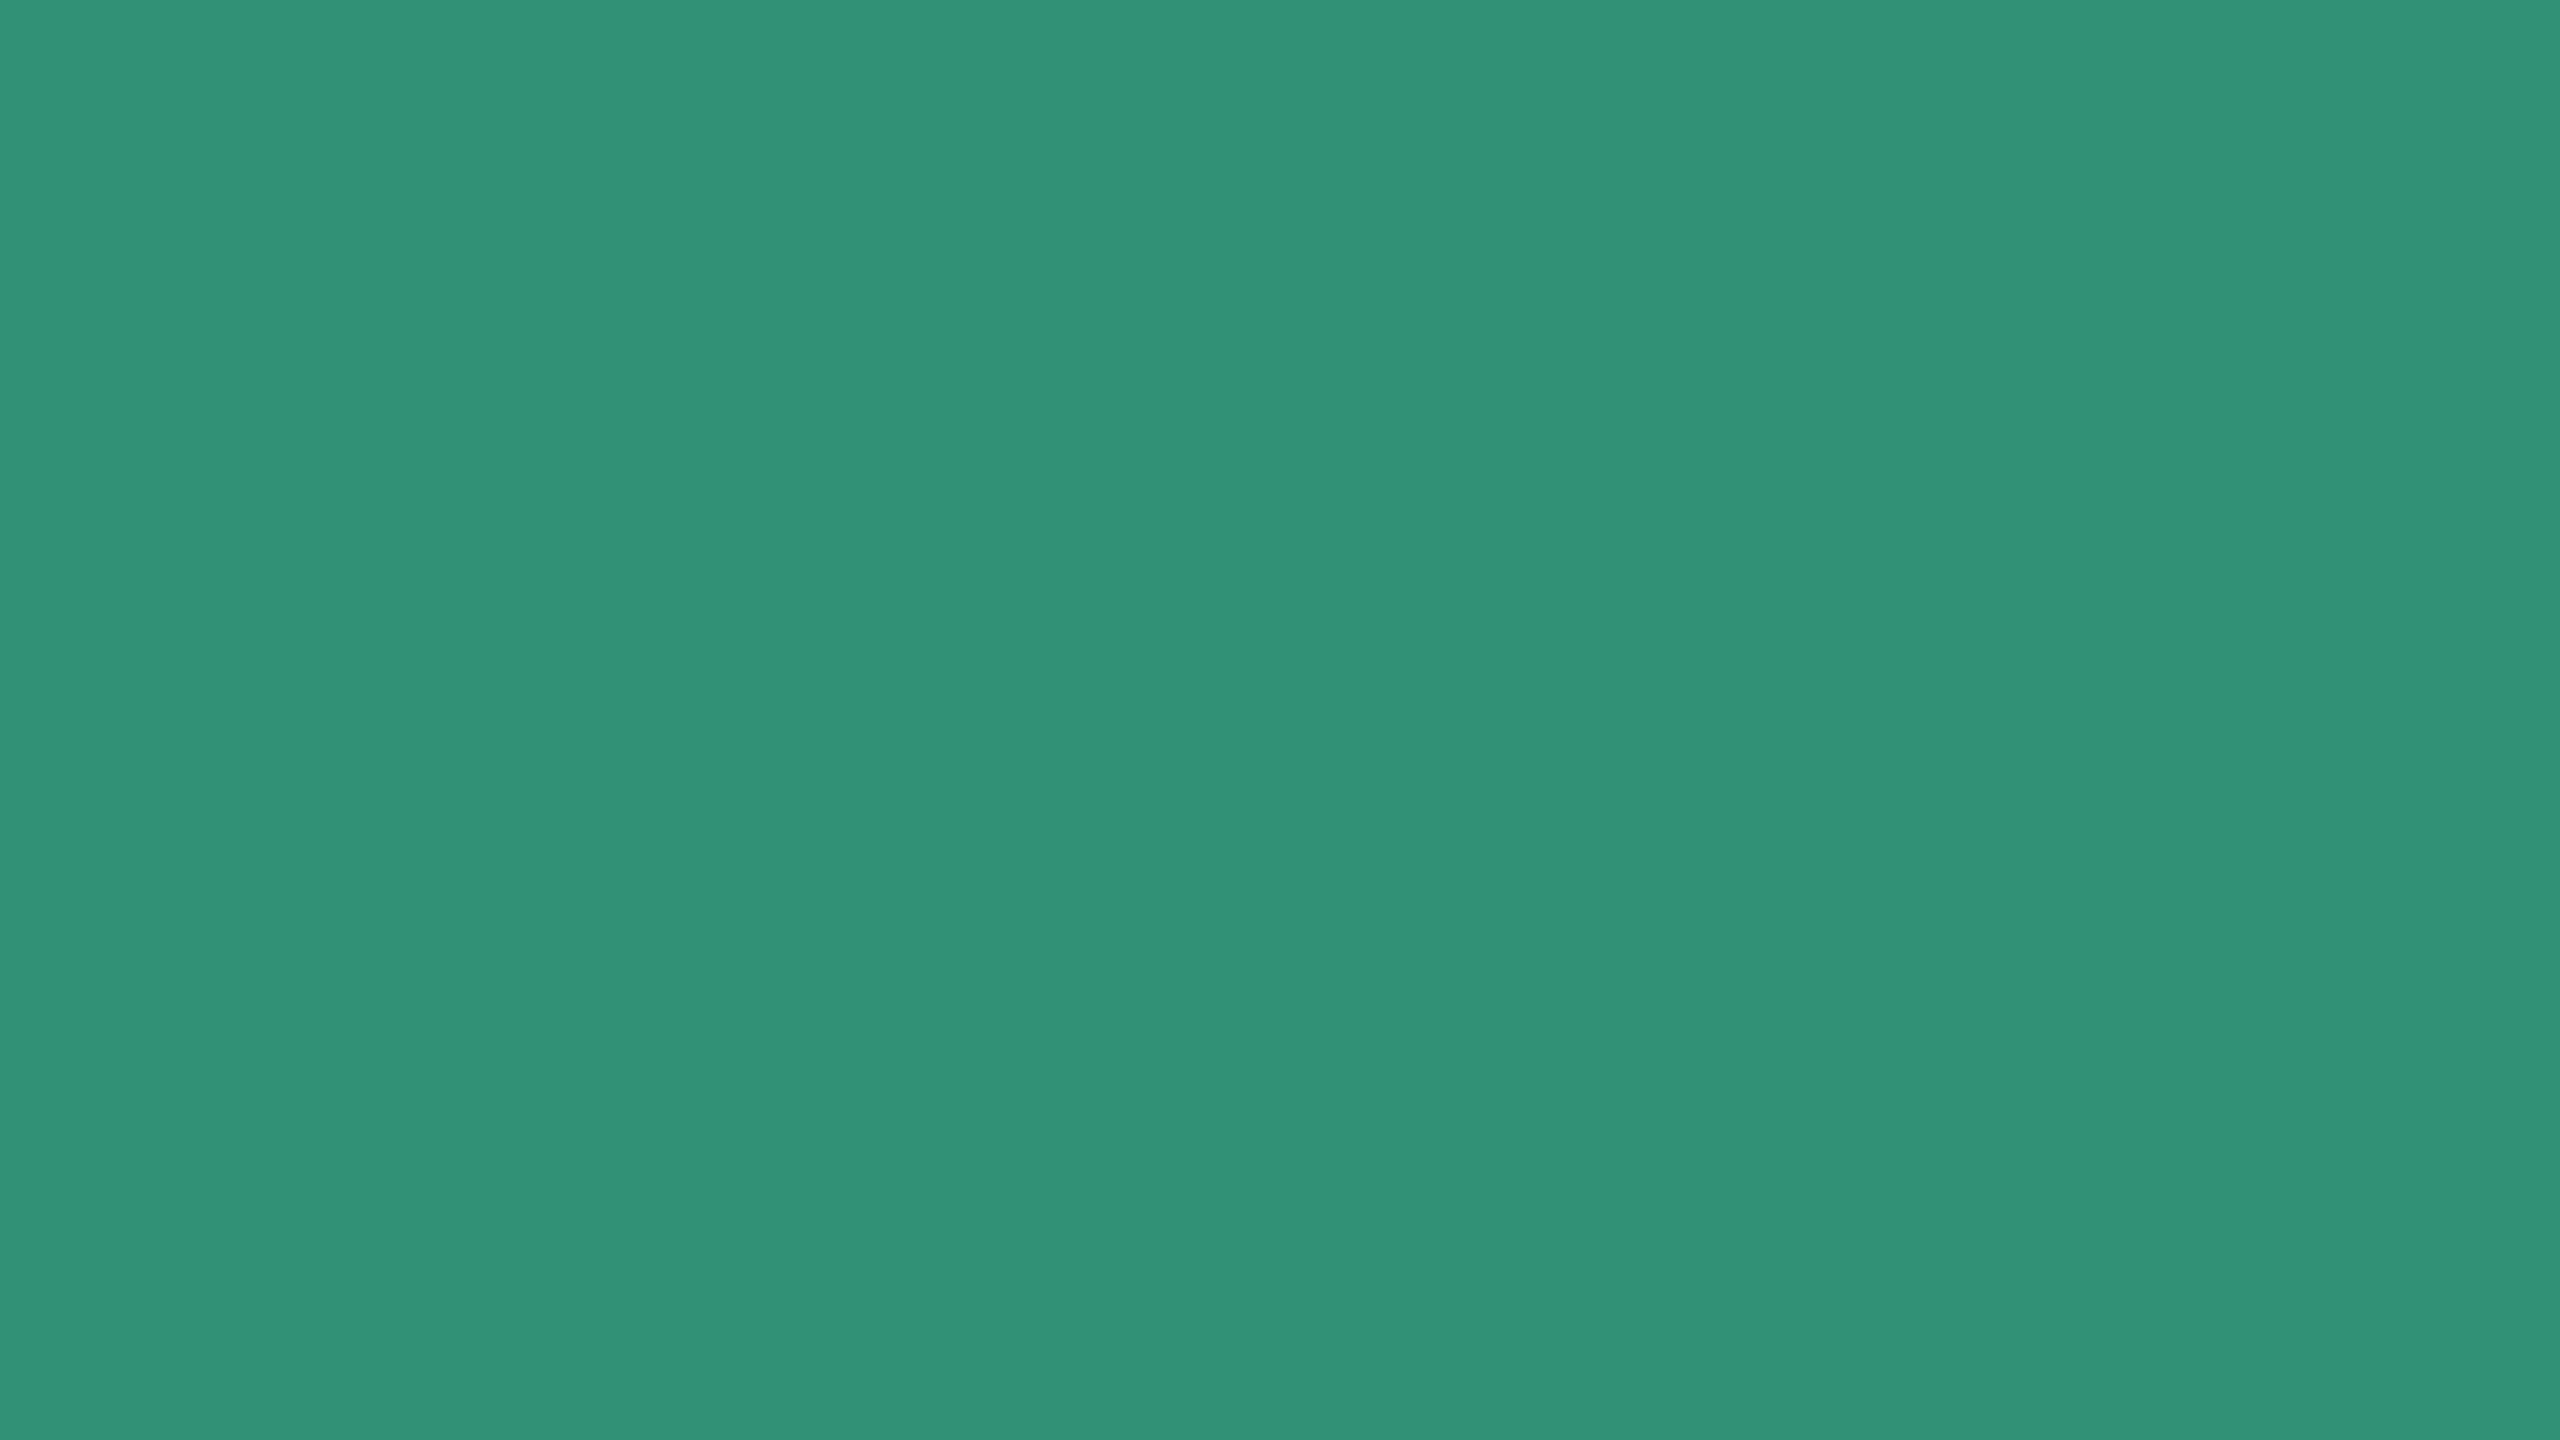 2560x1440 Illuminating Emerald Solid Color Background 2560x1440